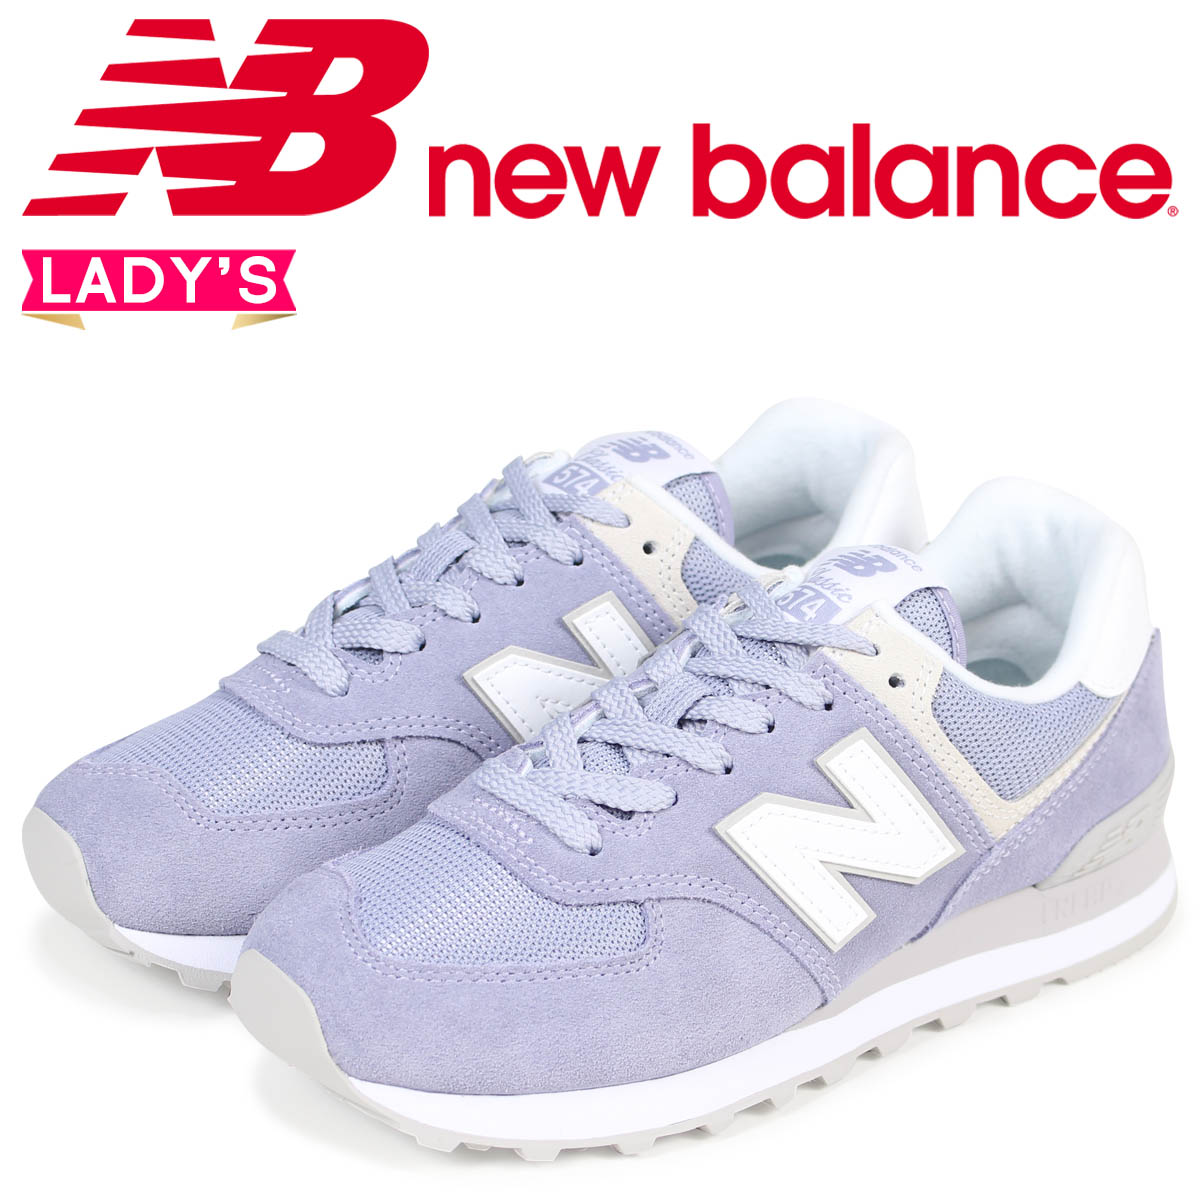 low priced 9e530 716e6  NEW BALANCE which wears it, and has a good reputation for a feeling, and  is loved for many years by sneakers freak